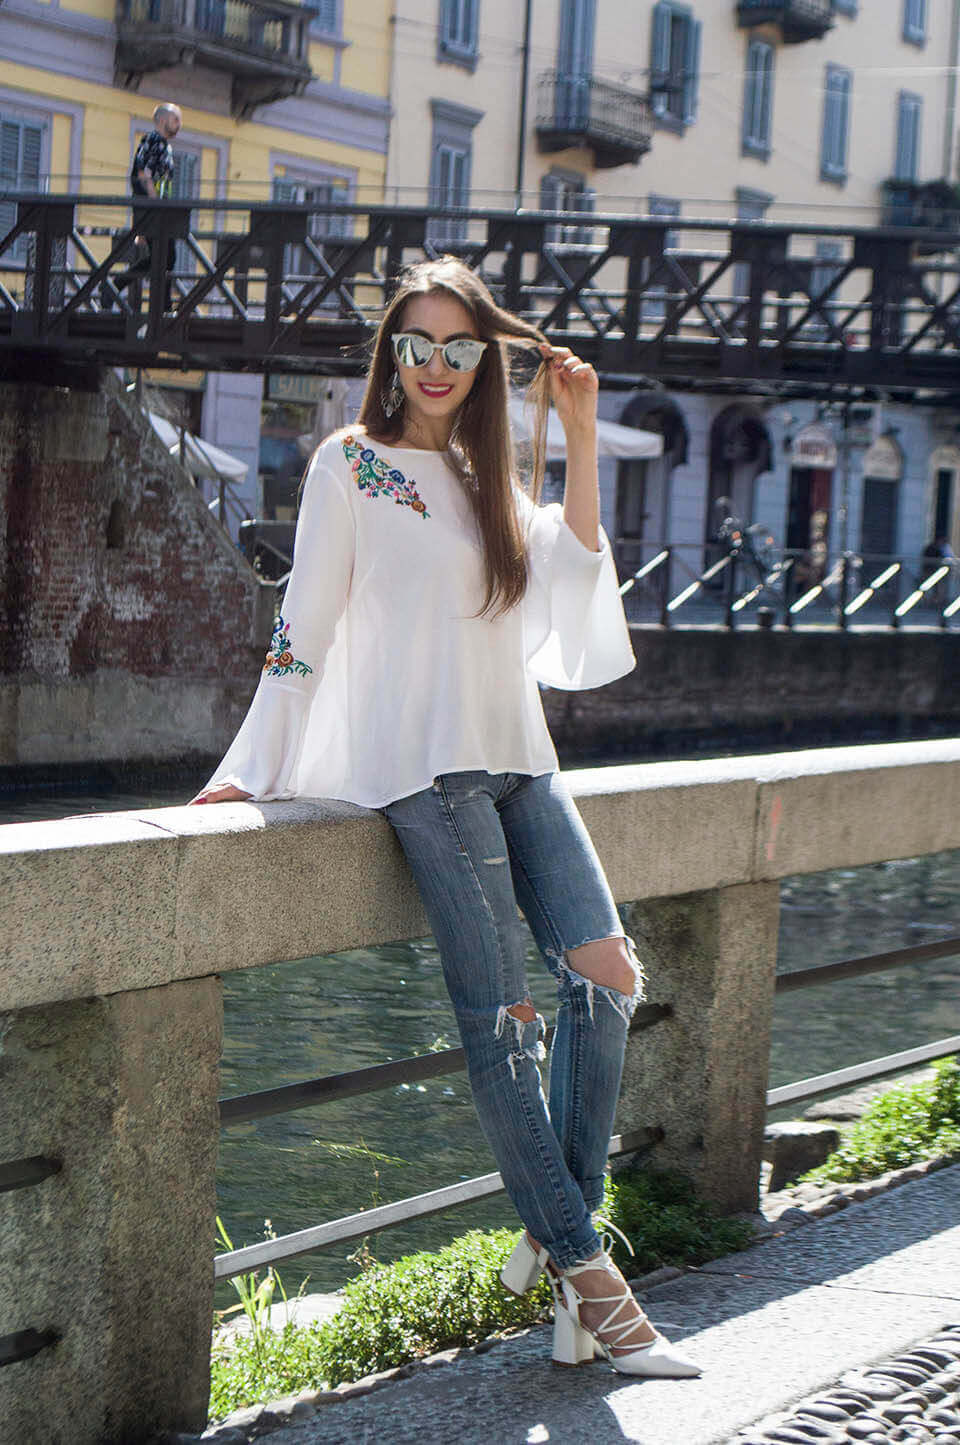 Denim outfit with white and floral top